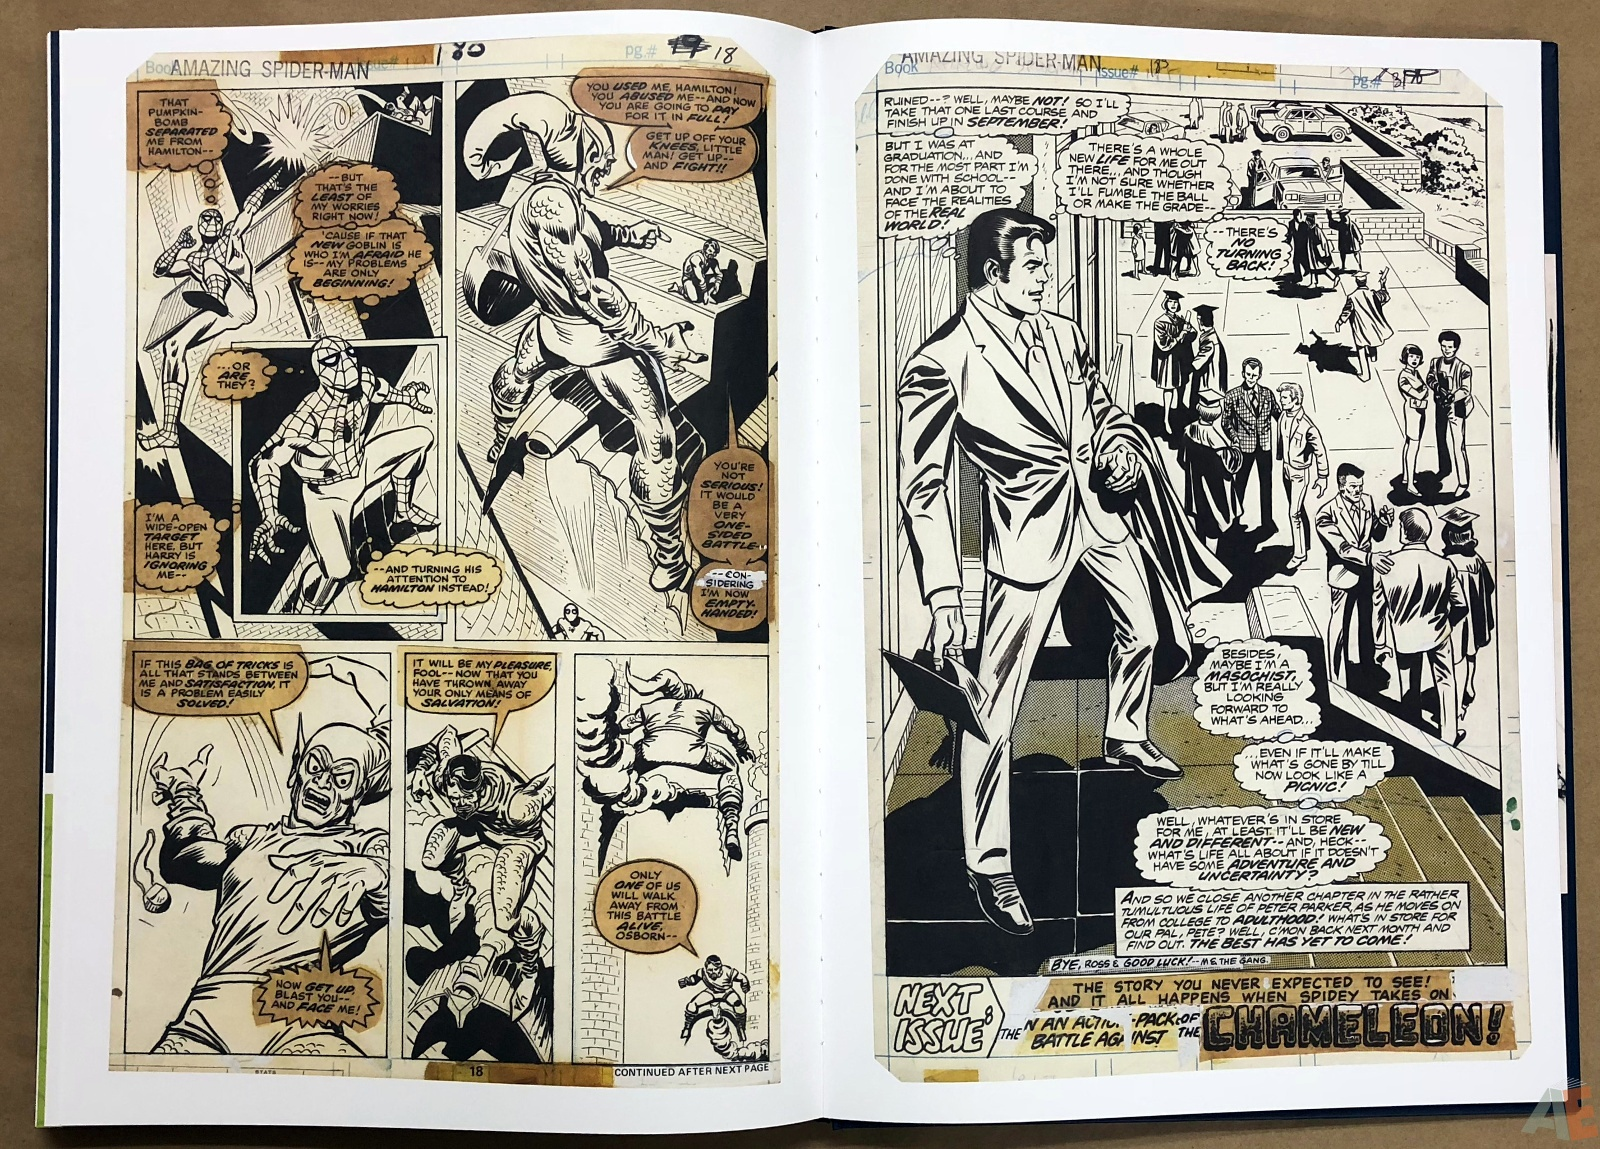 Ross Andru's The Amazing Spider-Man Artist's Edition 42